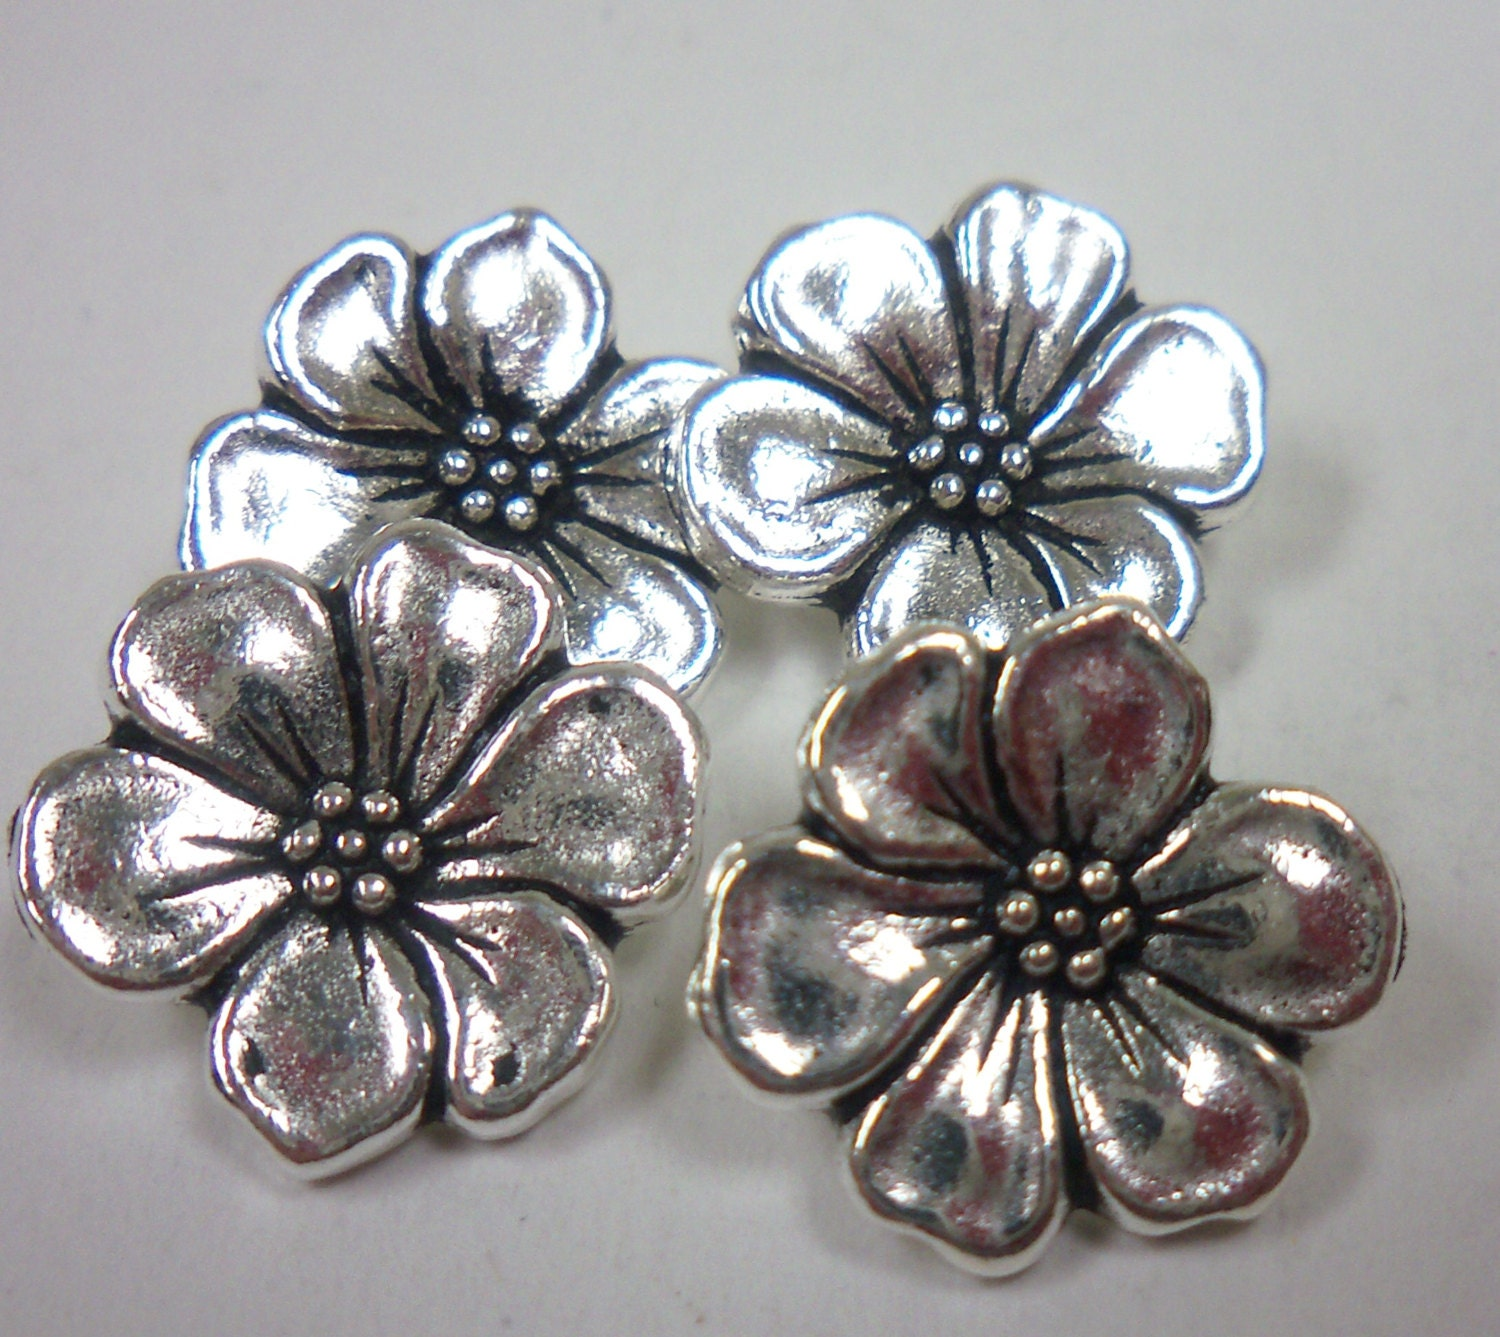 Jewelry making supplies tierracast pewter apple blossom button for Earring supplies for jewelry making